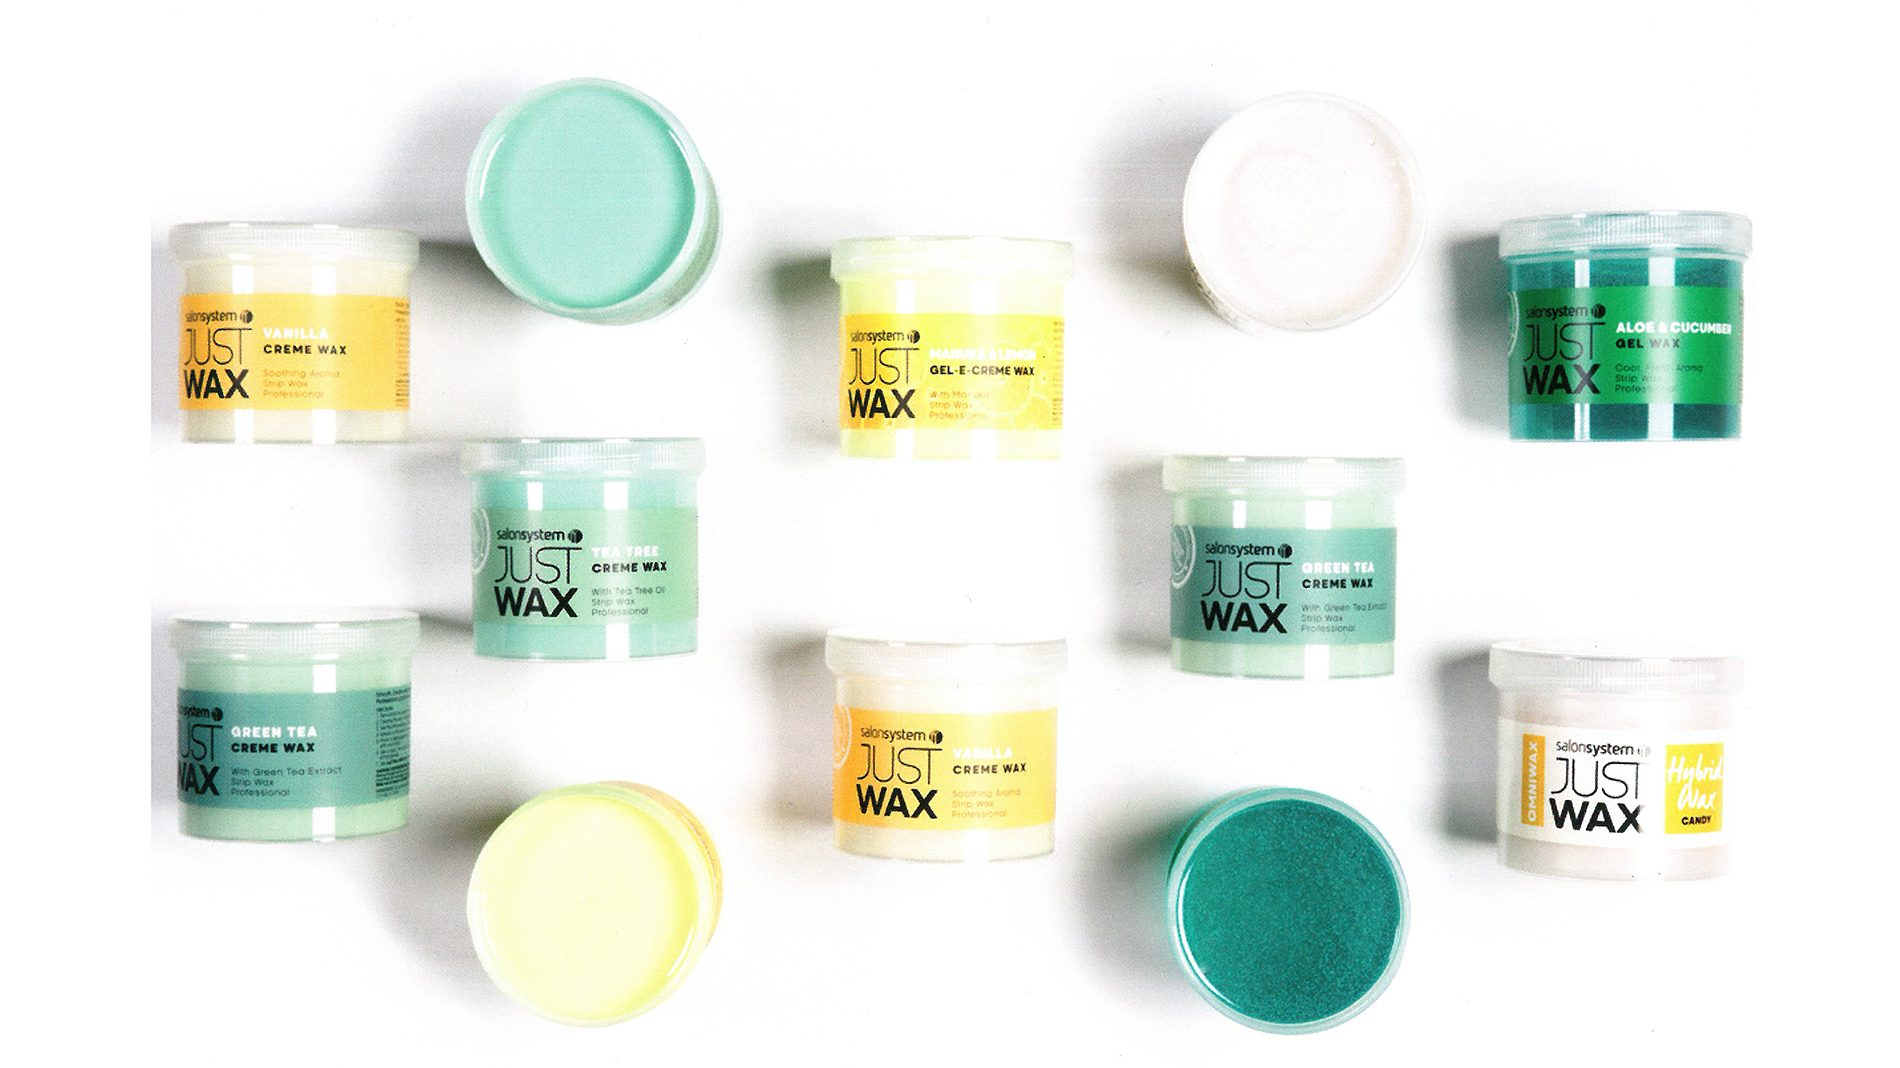 pots of justwax from salon systems, packaging designed by beyond london